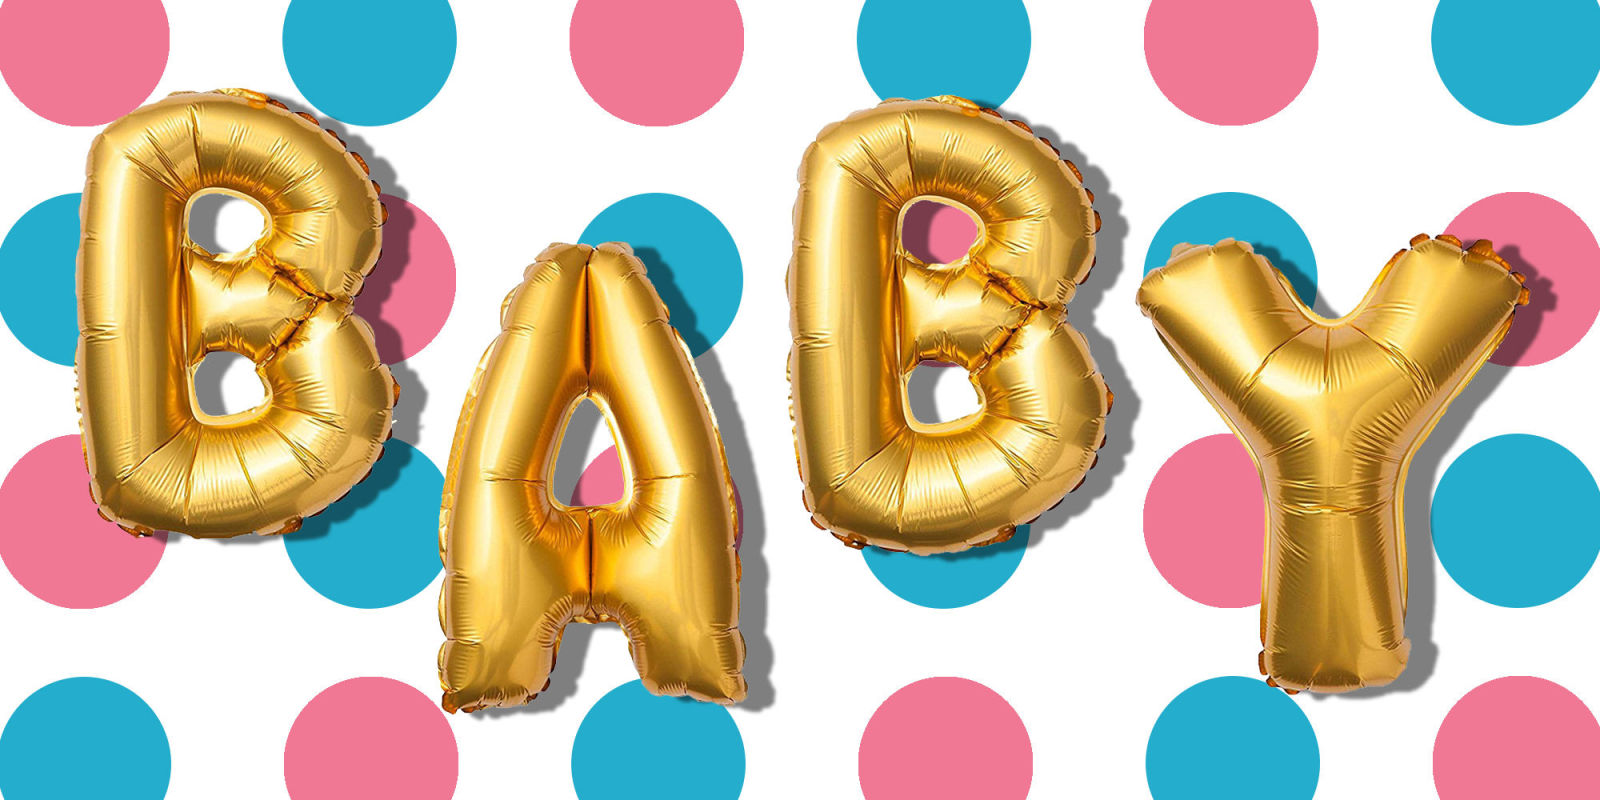 Best way for baby to sleep in crib - Gender Reveal Party